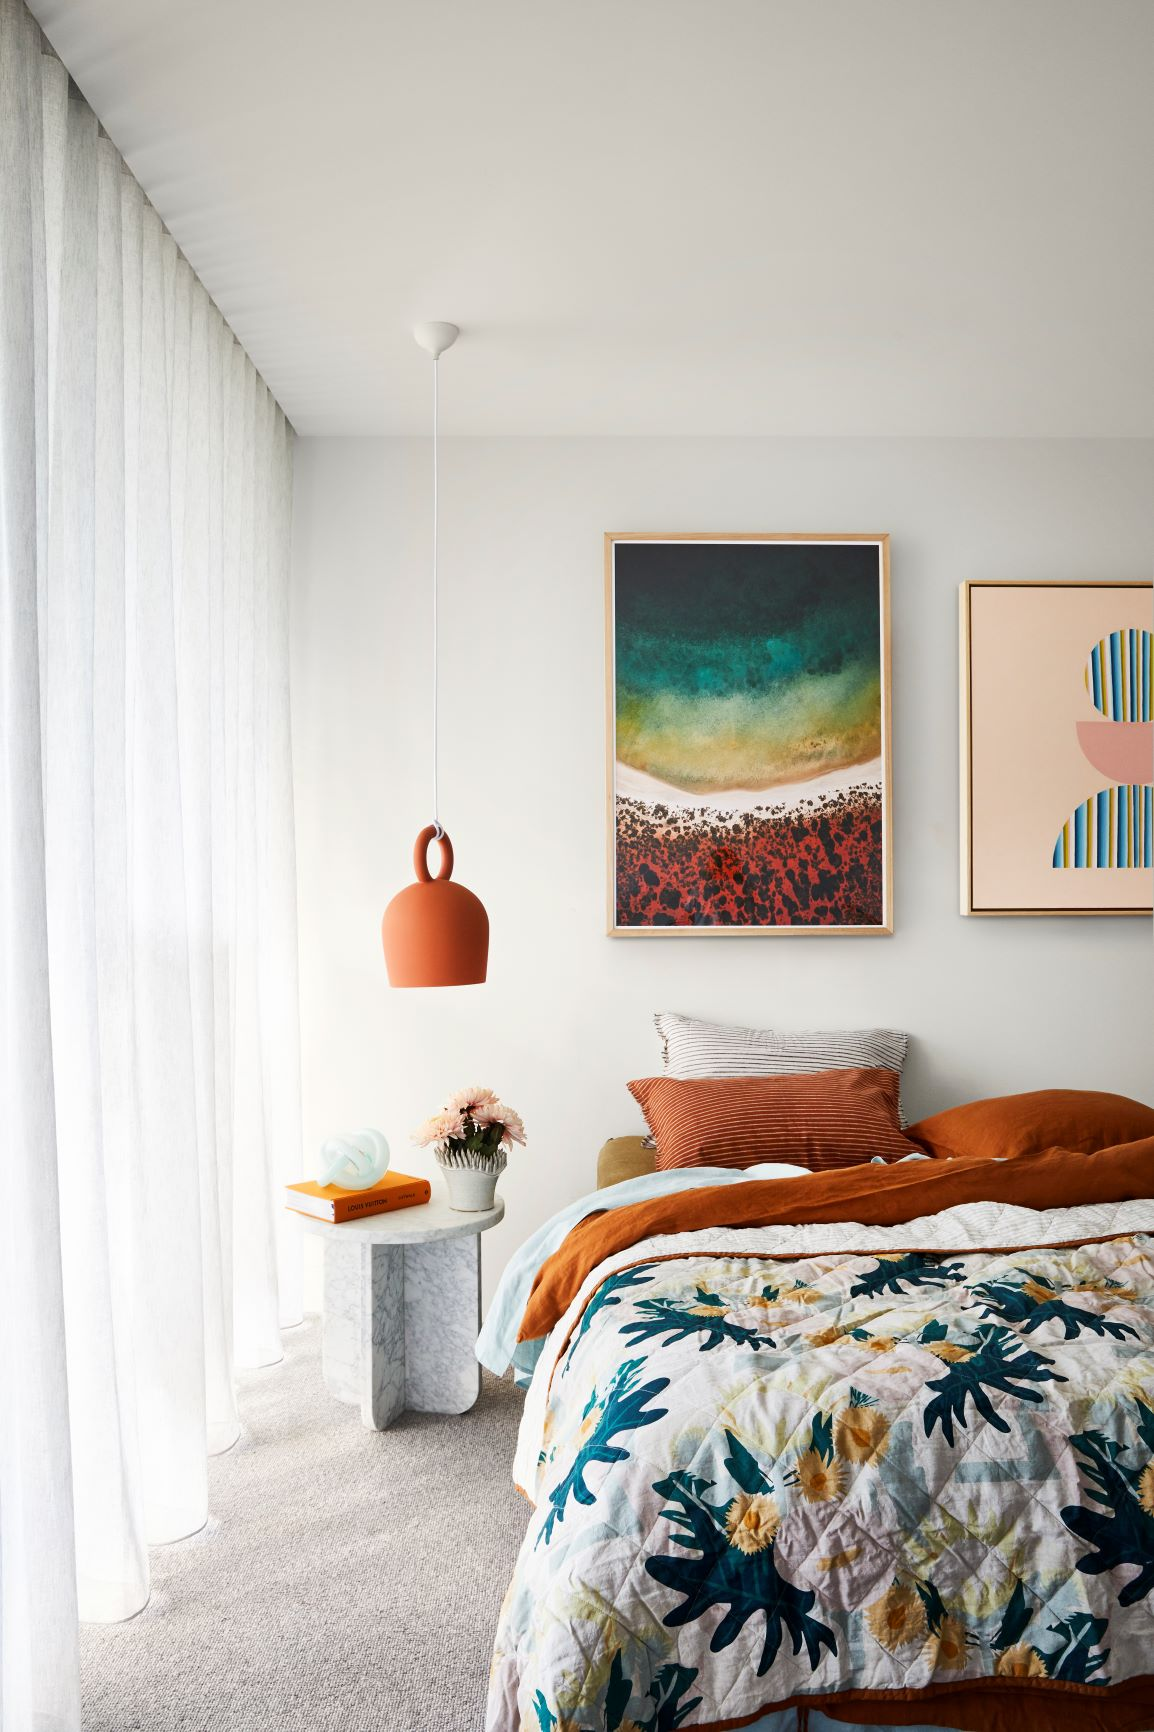 One Bedroom - 3 colour schemes